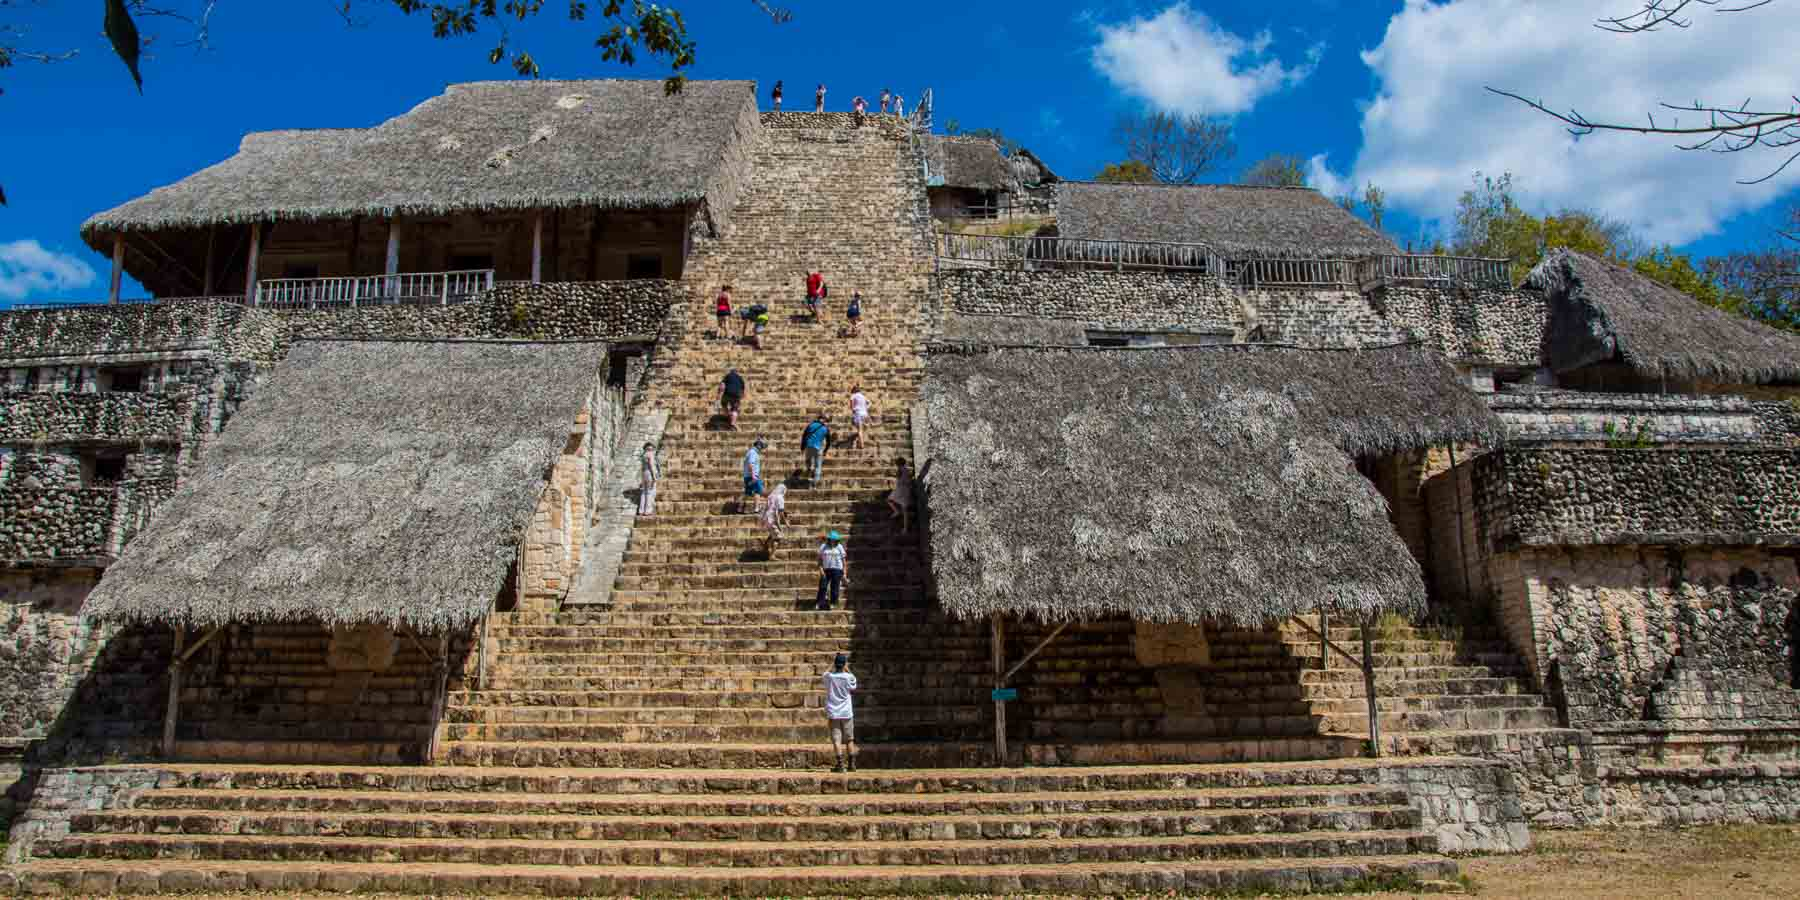 The stairs up the El Torre pyramid.